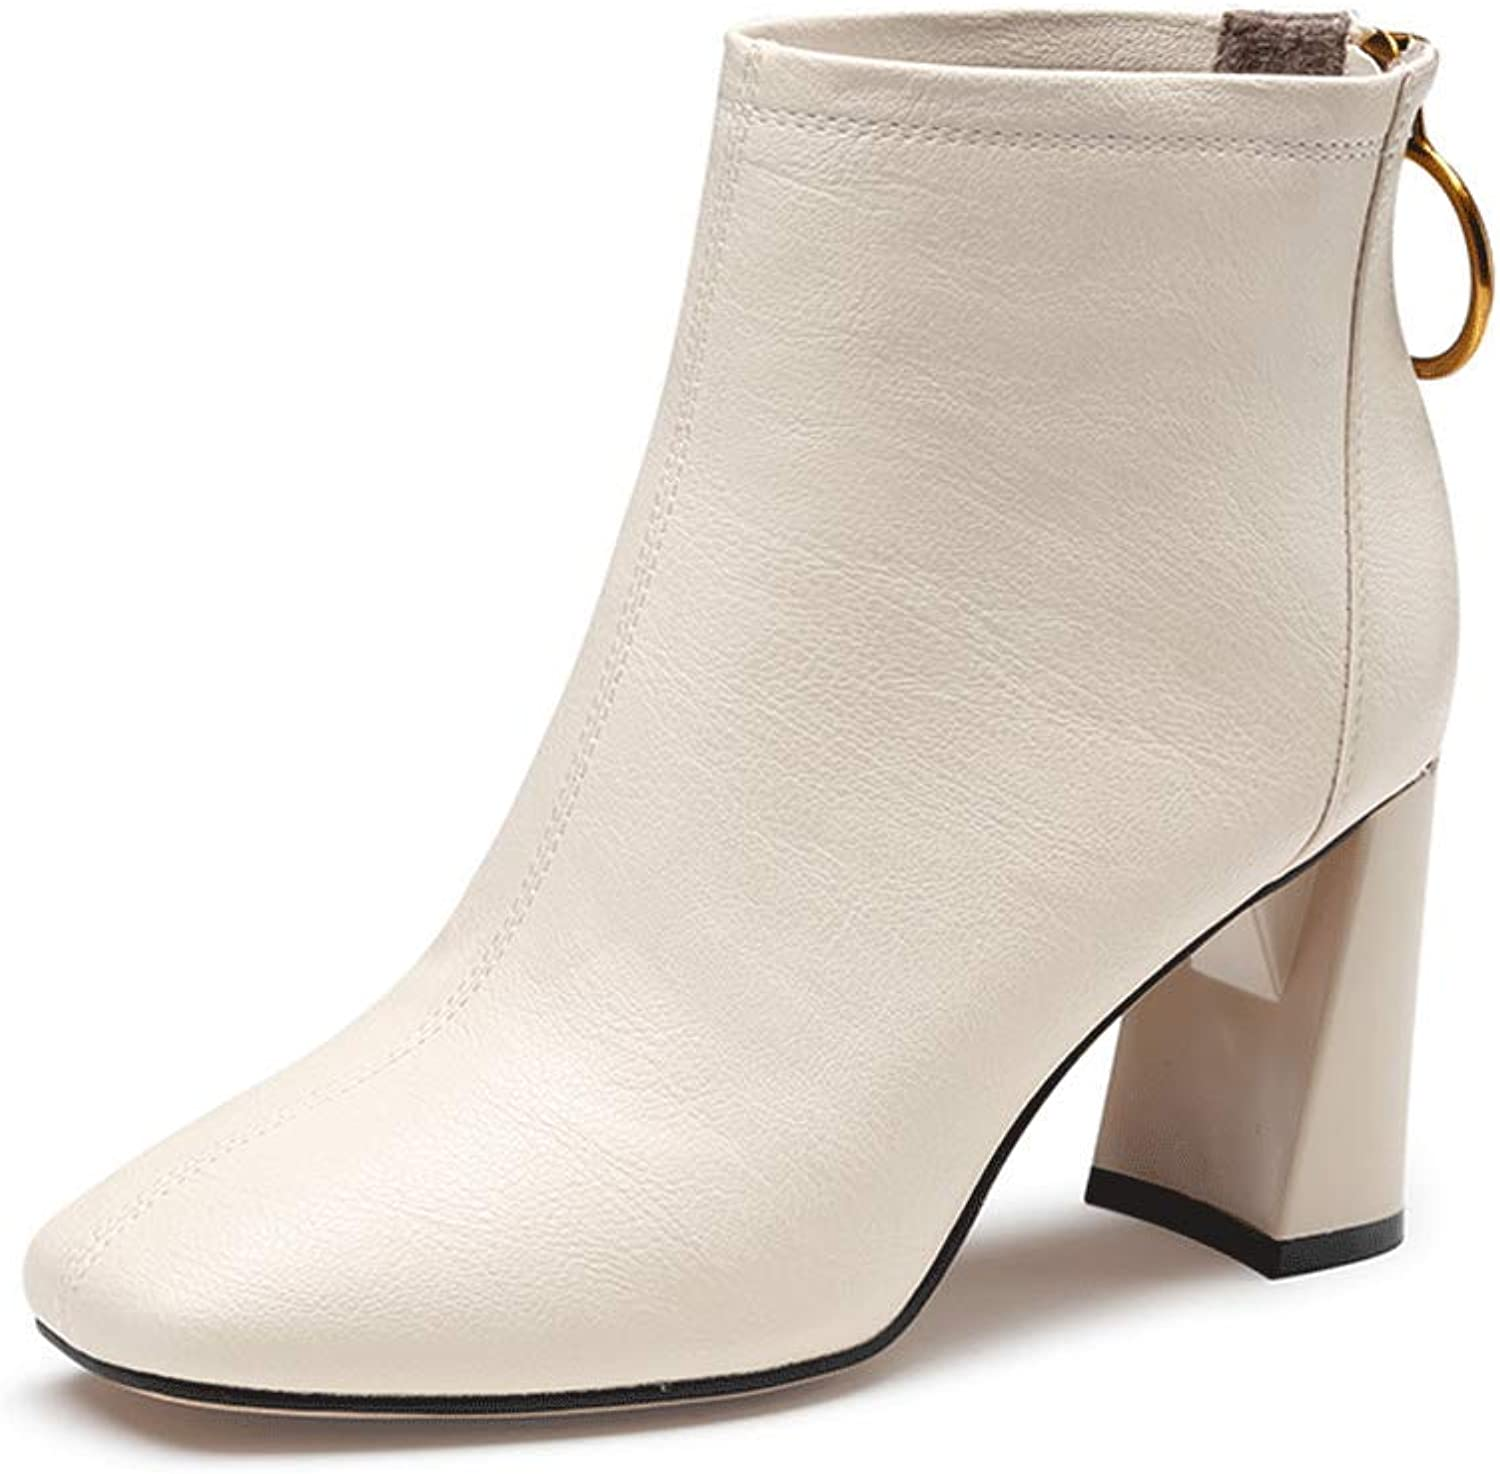 MKOP Women's Fashion Ankle Boots - Chunky High Heel